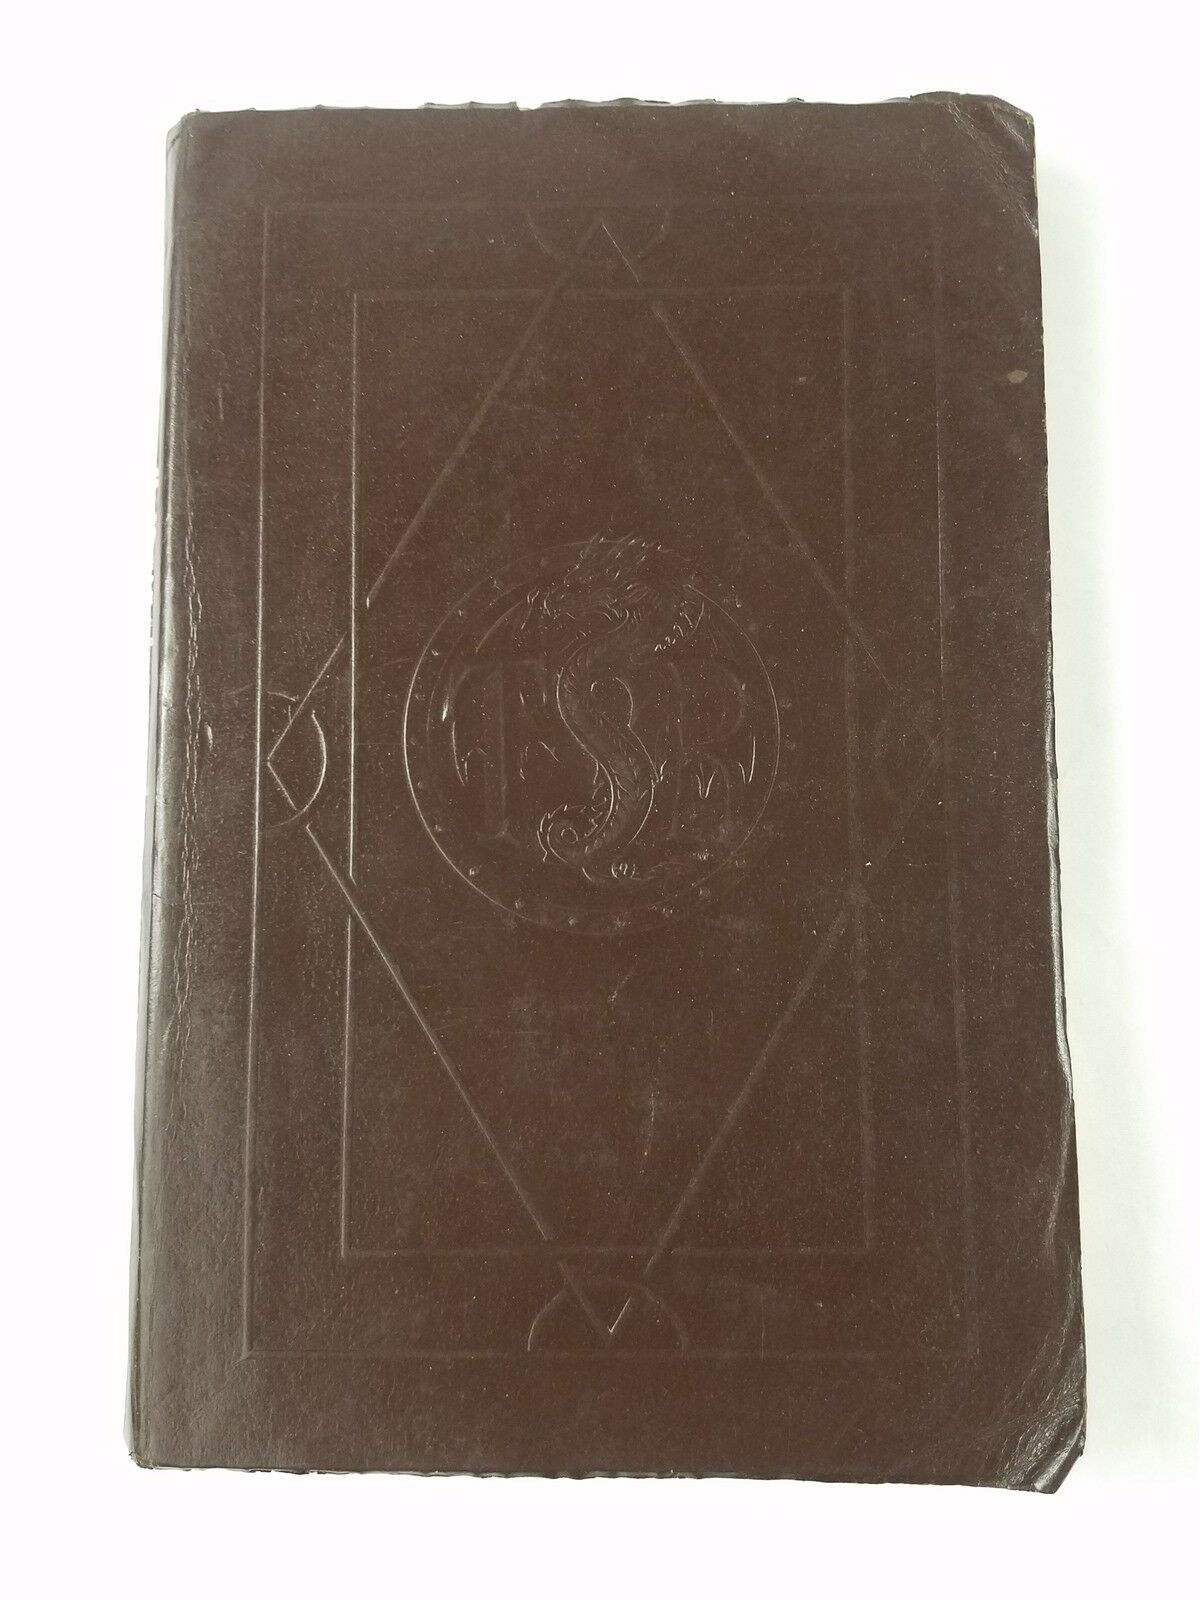 AD&D ENCYCLOPEDIA MAGICA VOLUME 1 LEATHERETTE VGC+ 1ST PRINT REFERENCE BOOK